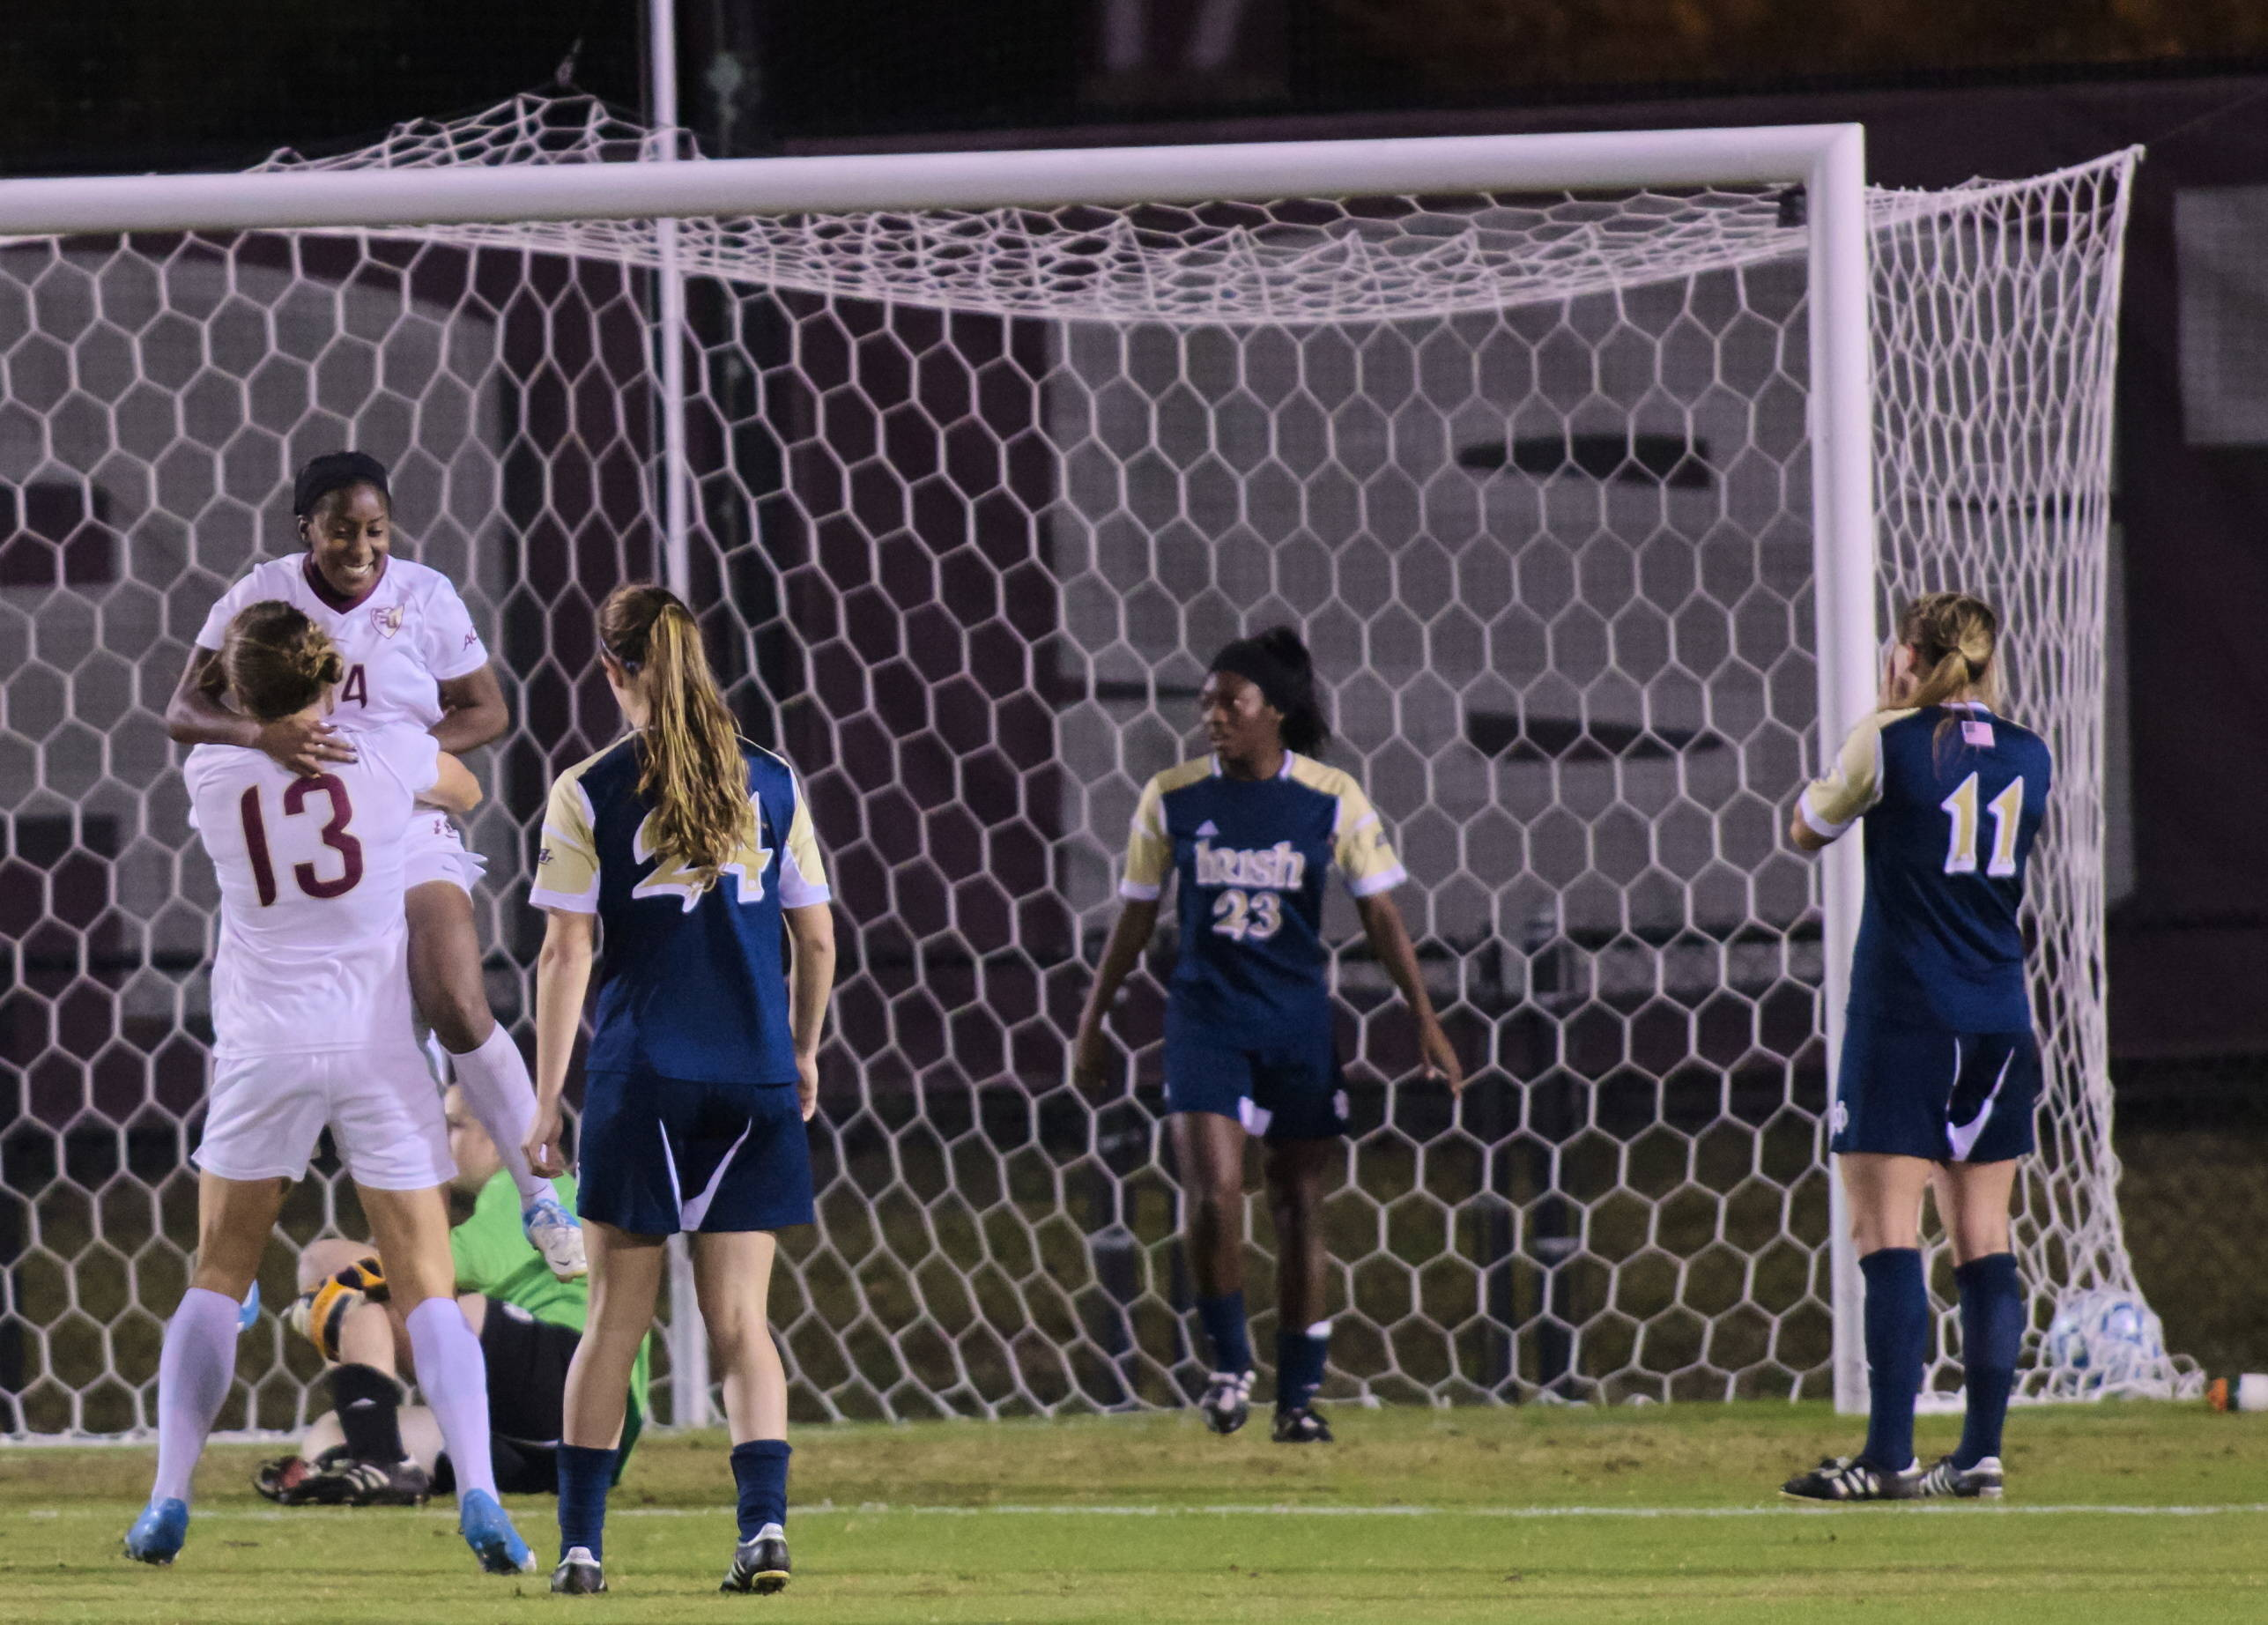 Kristin Grubka (13) lifting up Tiffany McCarty (14) after her eventual winning goal, FSU vs Notre Dame, 11/23/12. (Photo by Steve Musco)